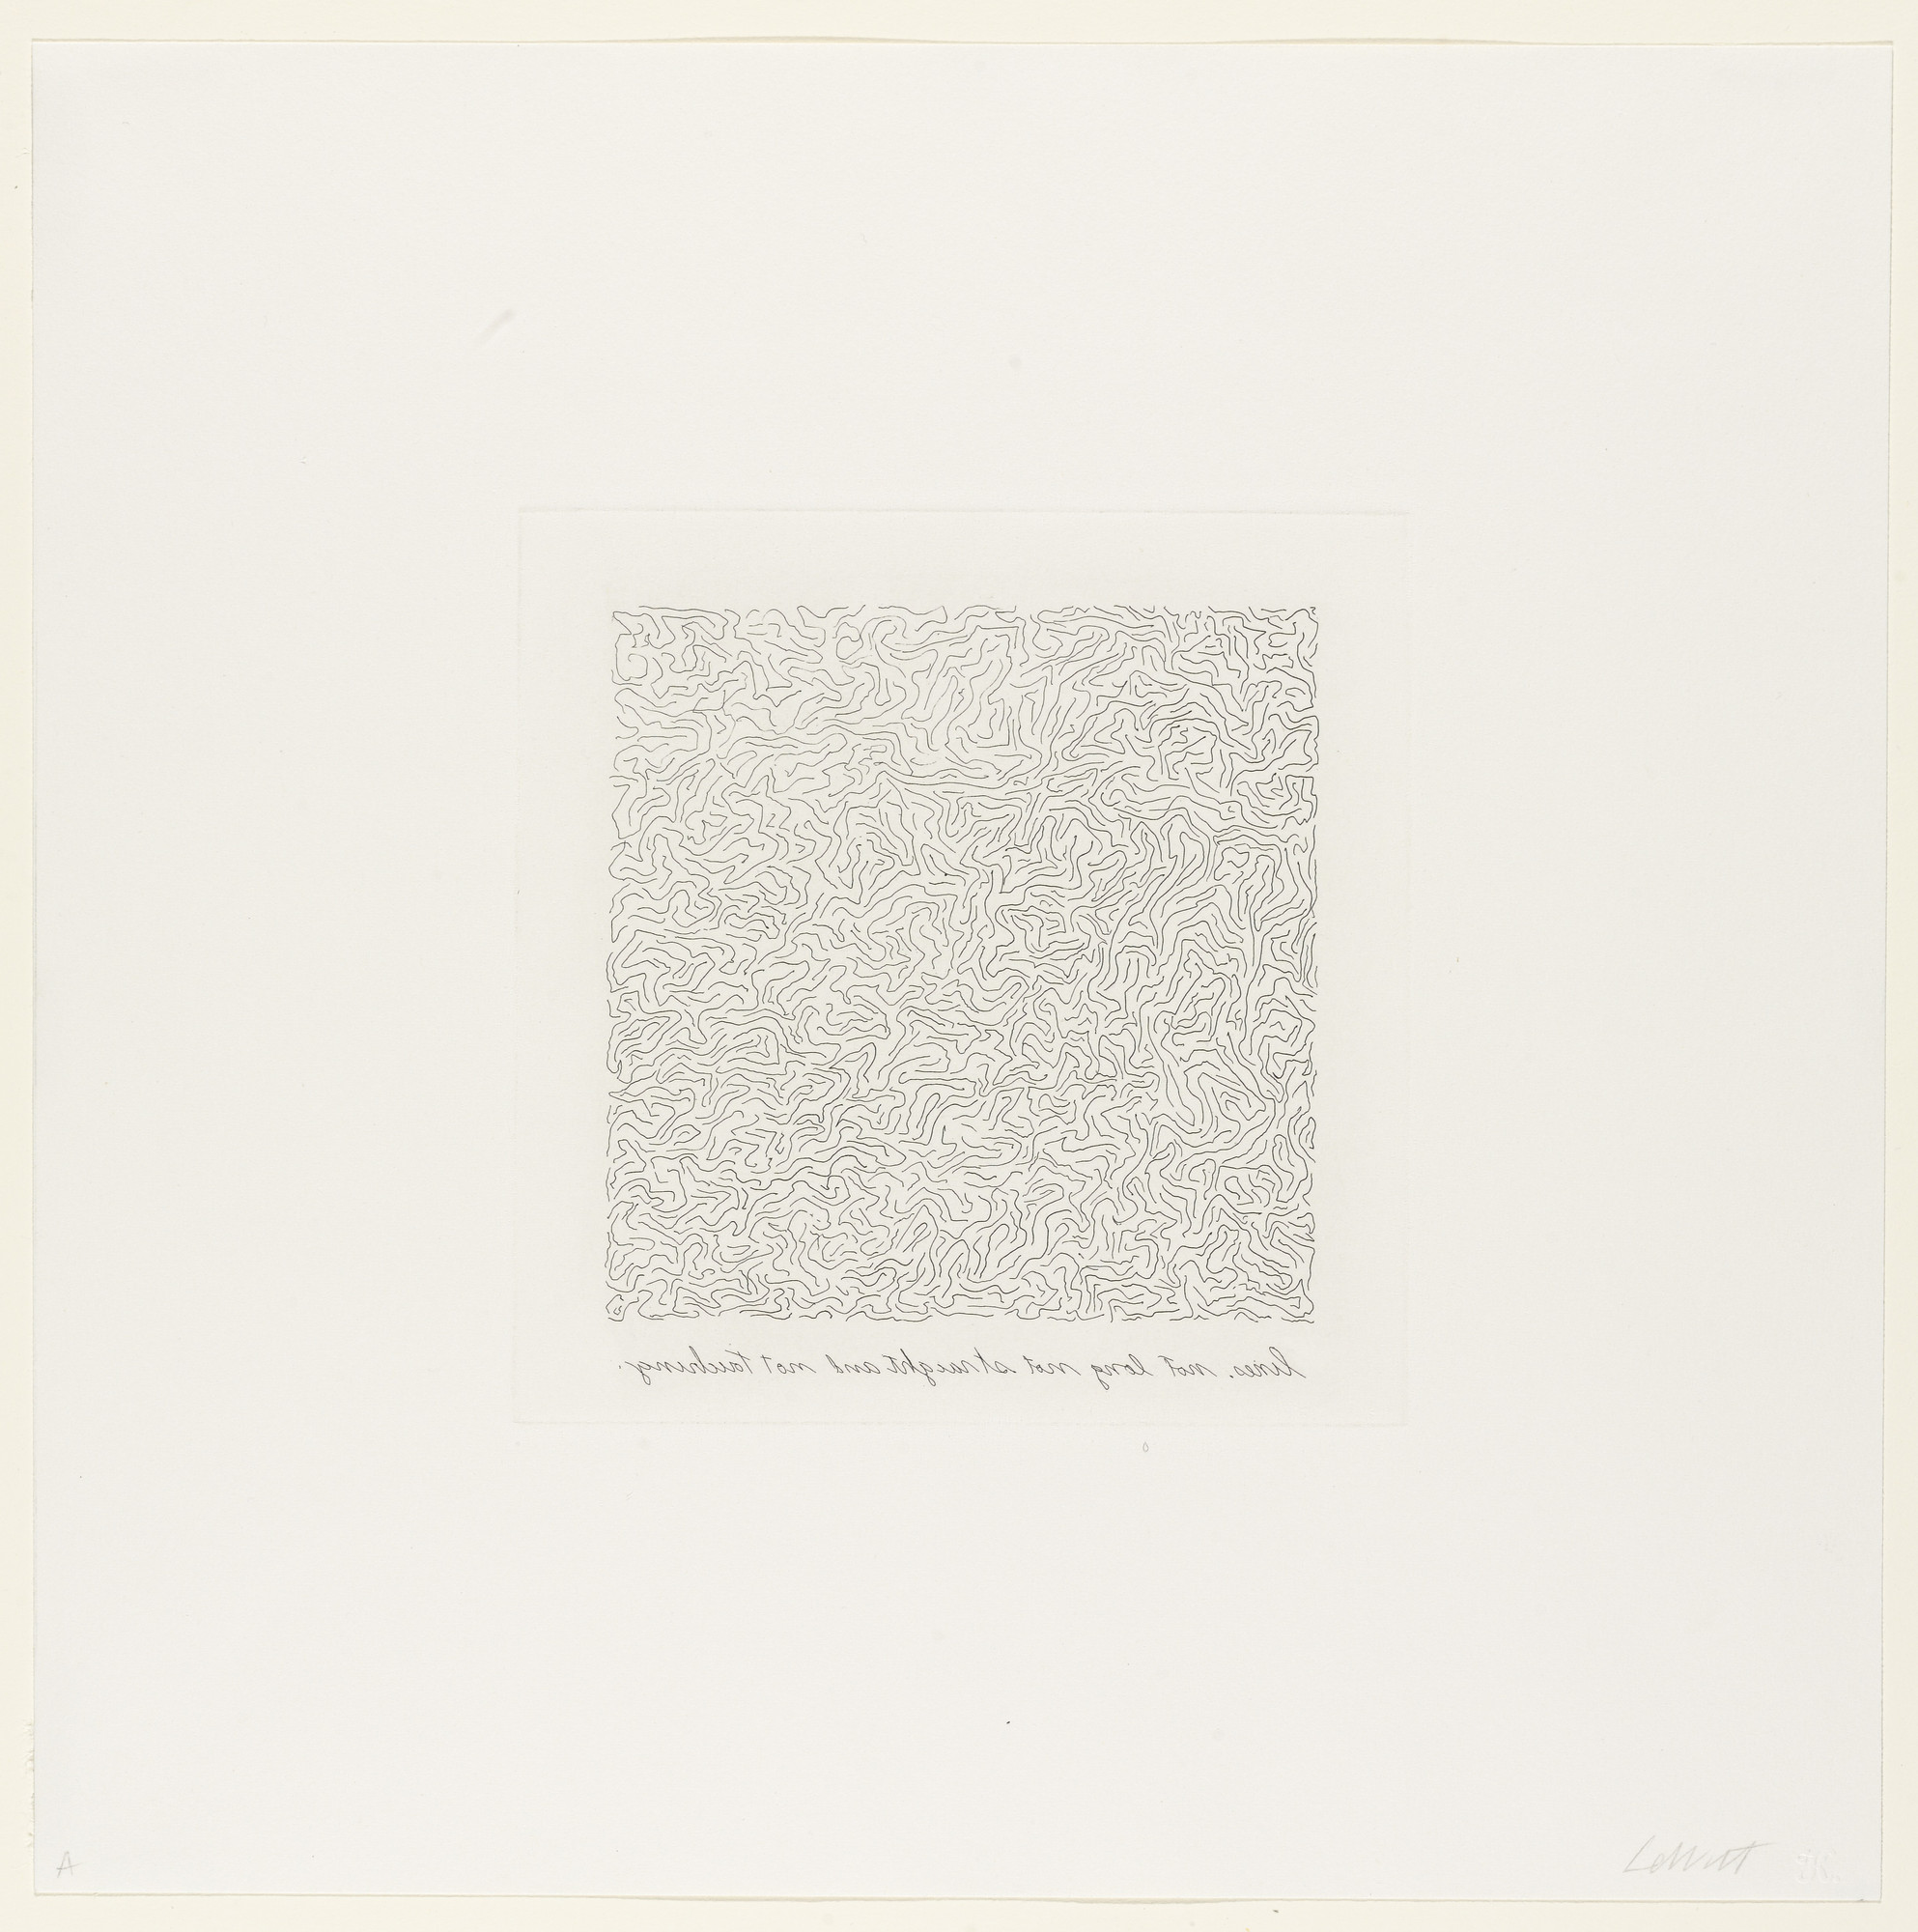 Sol LeWitt. Lines, Not Long, Not-Straight & Not Touching. 1971